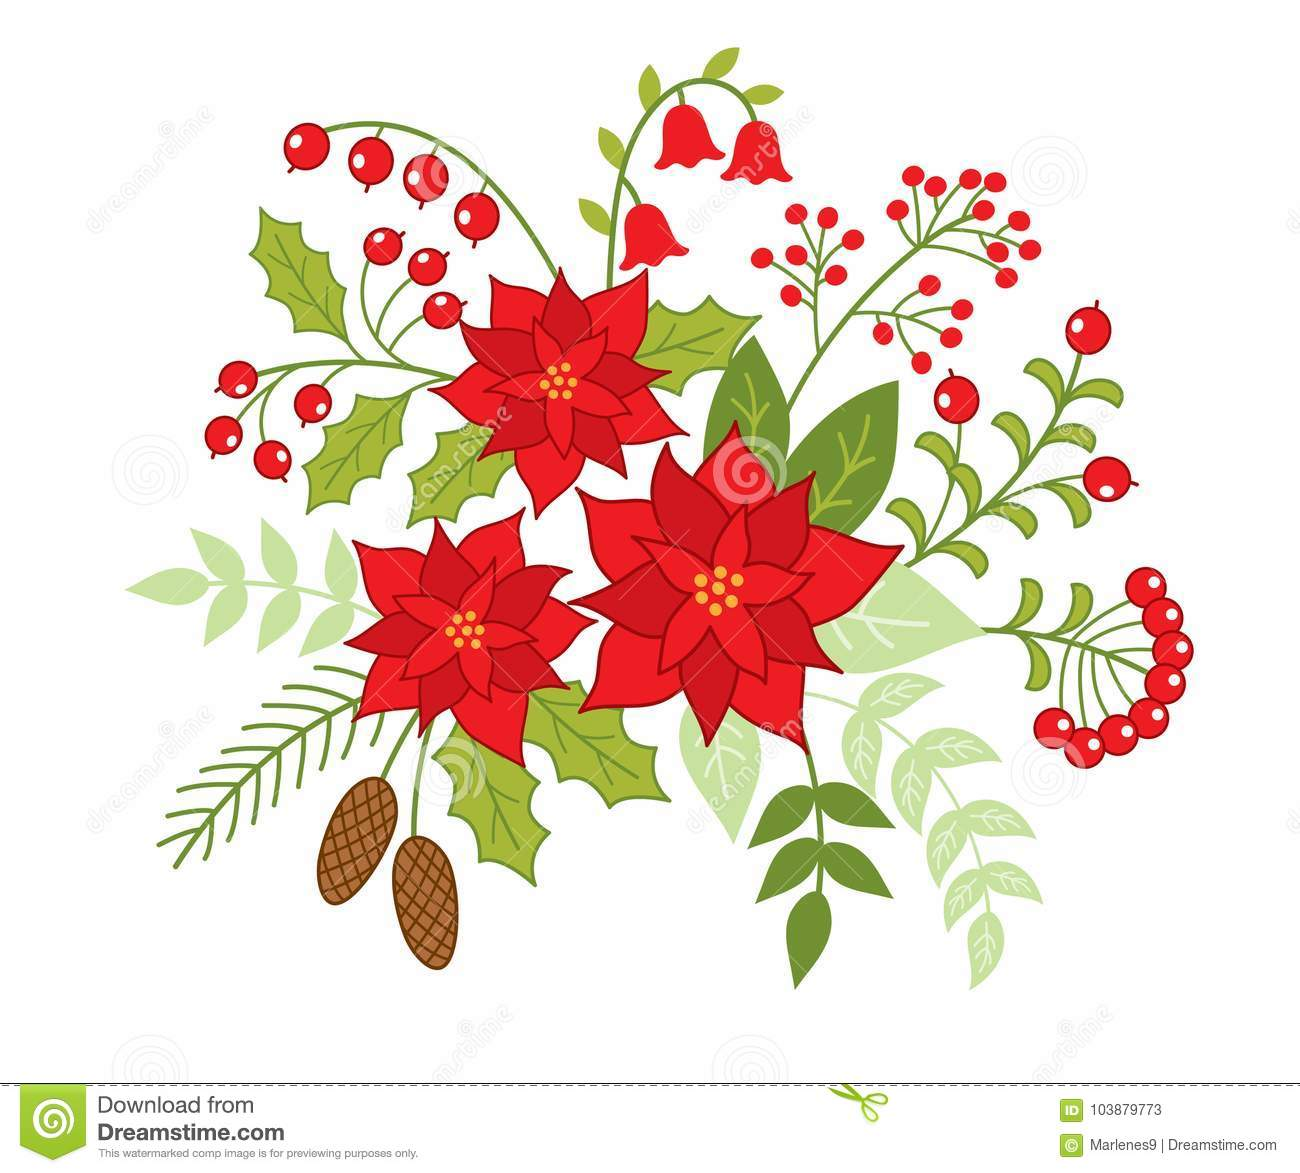 Vector Christmas Floral Bouquet with Poinsettia and Red Berries